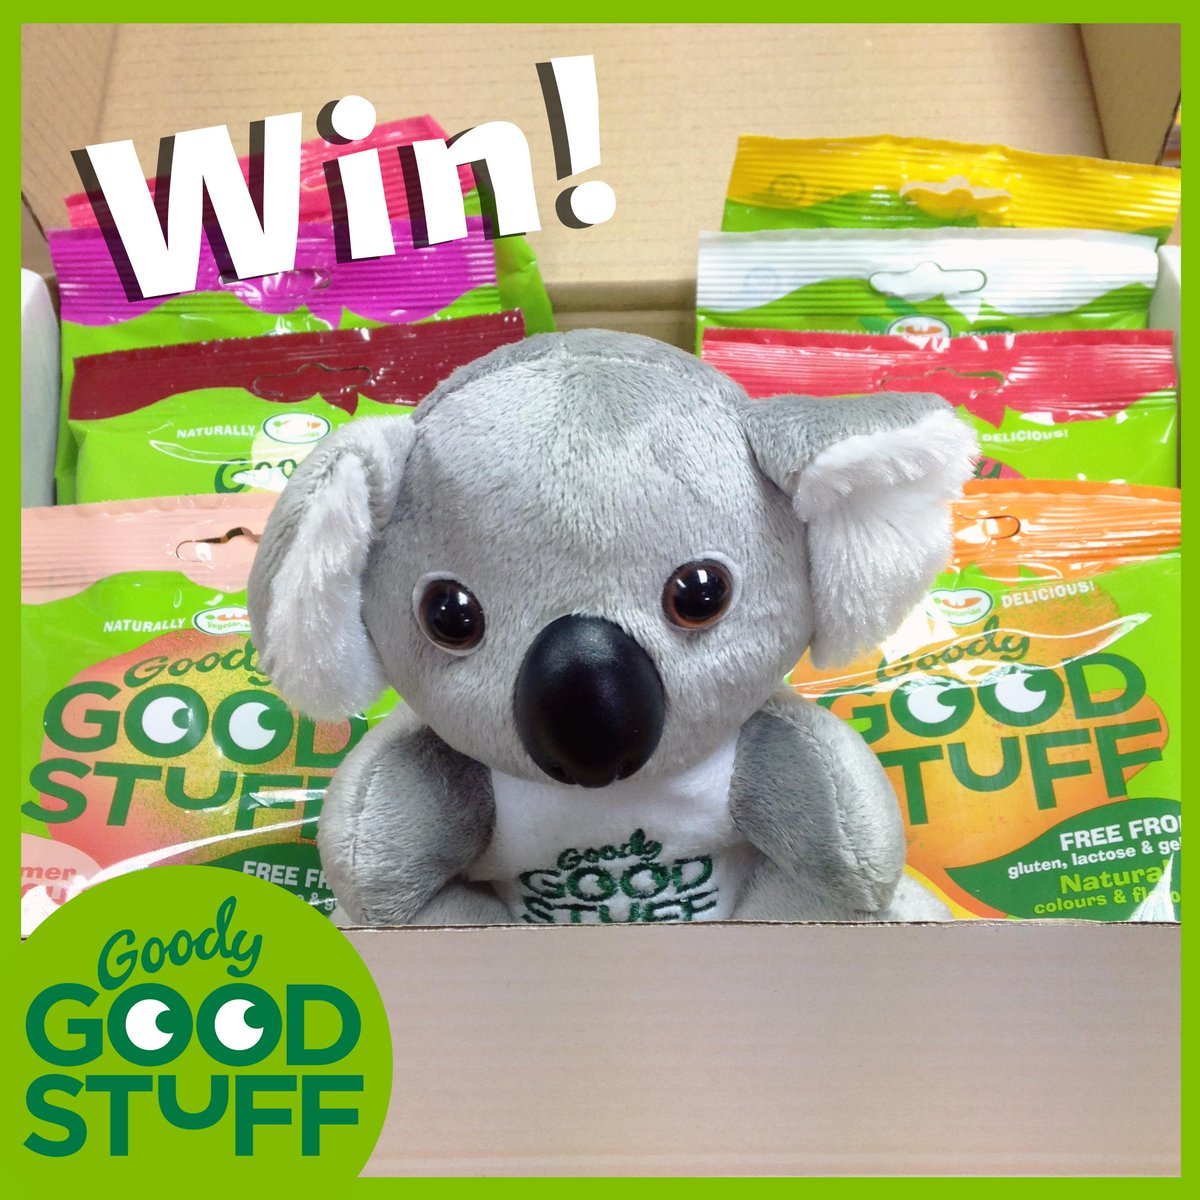 To celebrate #Vegetarianweek we would love to give away one of our special Goody boxes! Simply RT to win! #NVW15 http://t.co/qOwY2SuGXq